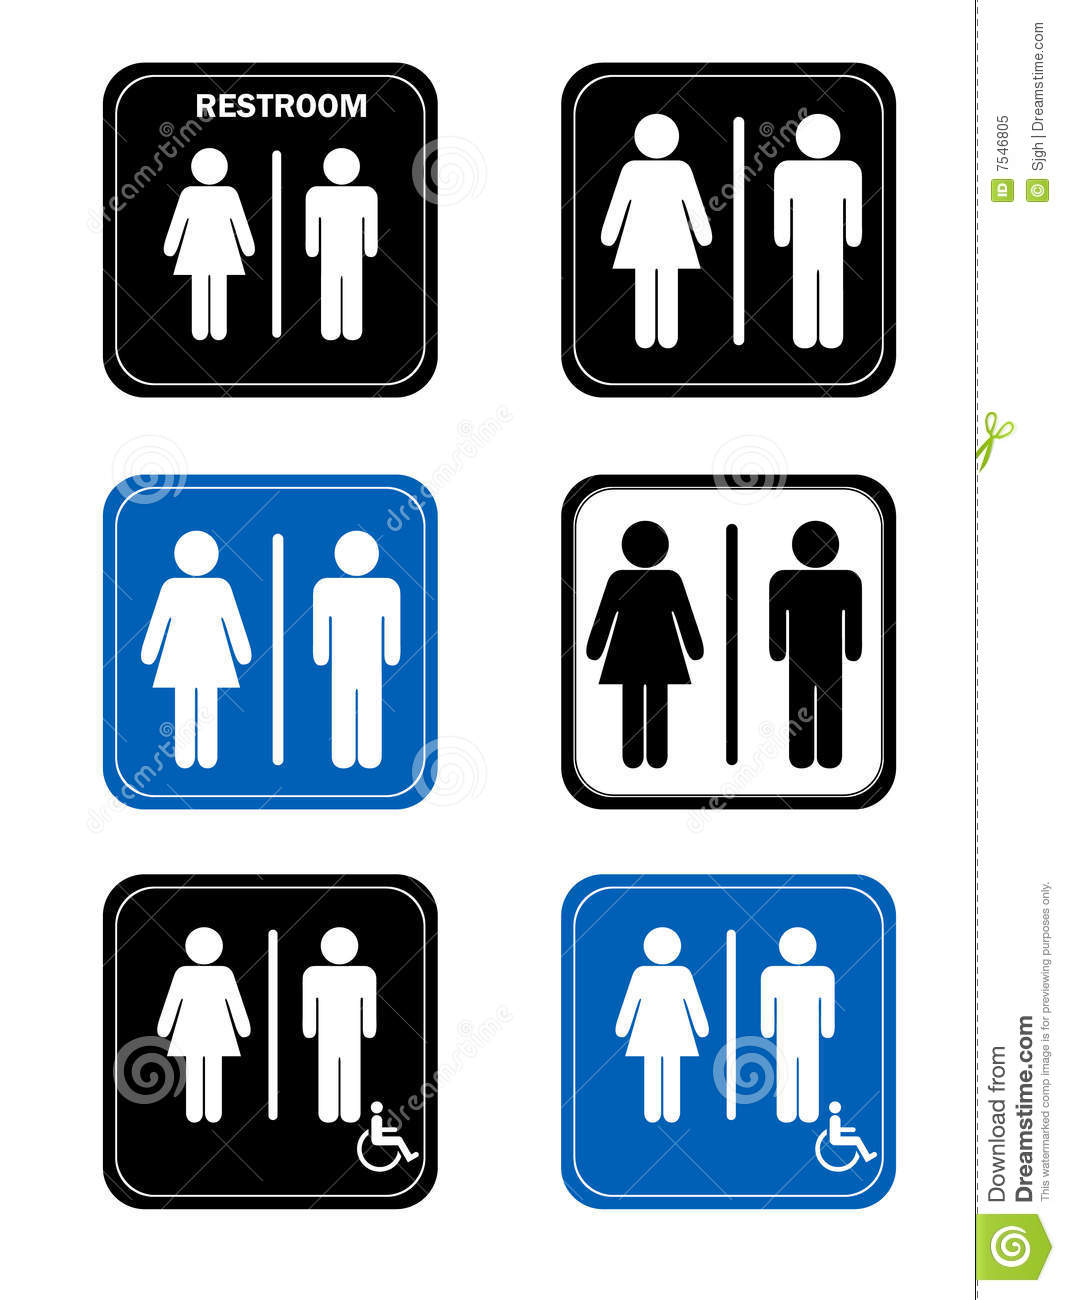 Restroom signs with men and women handicap washro stock illustration image 7546805 Men women bathroom signs